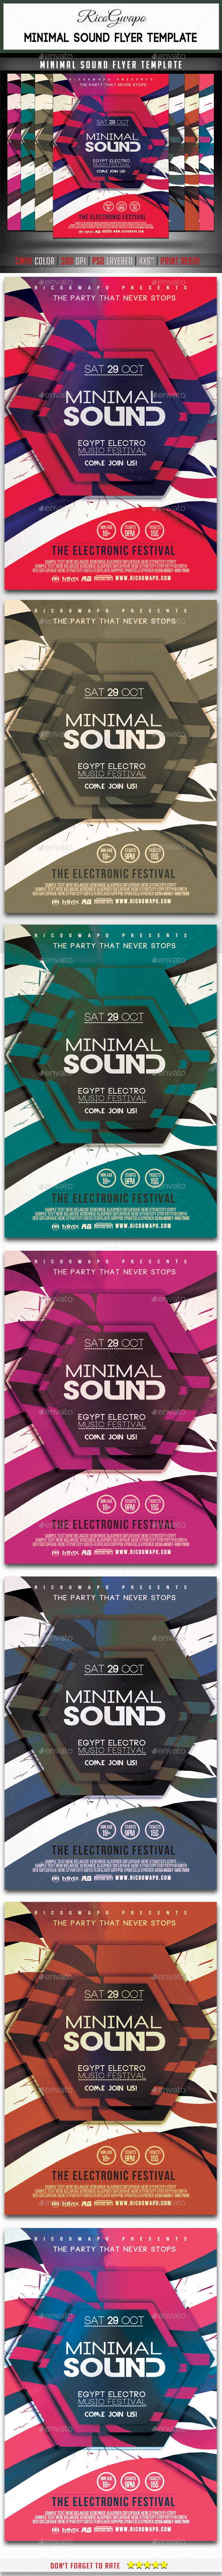 Minimal Sound Flyer Template